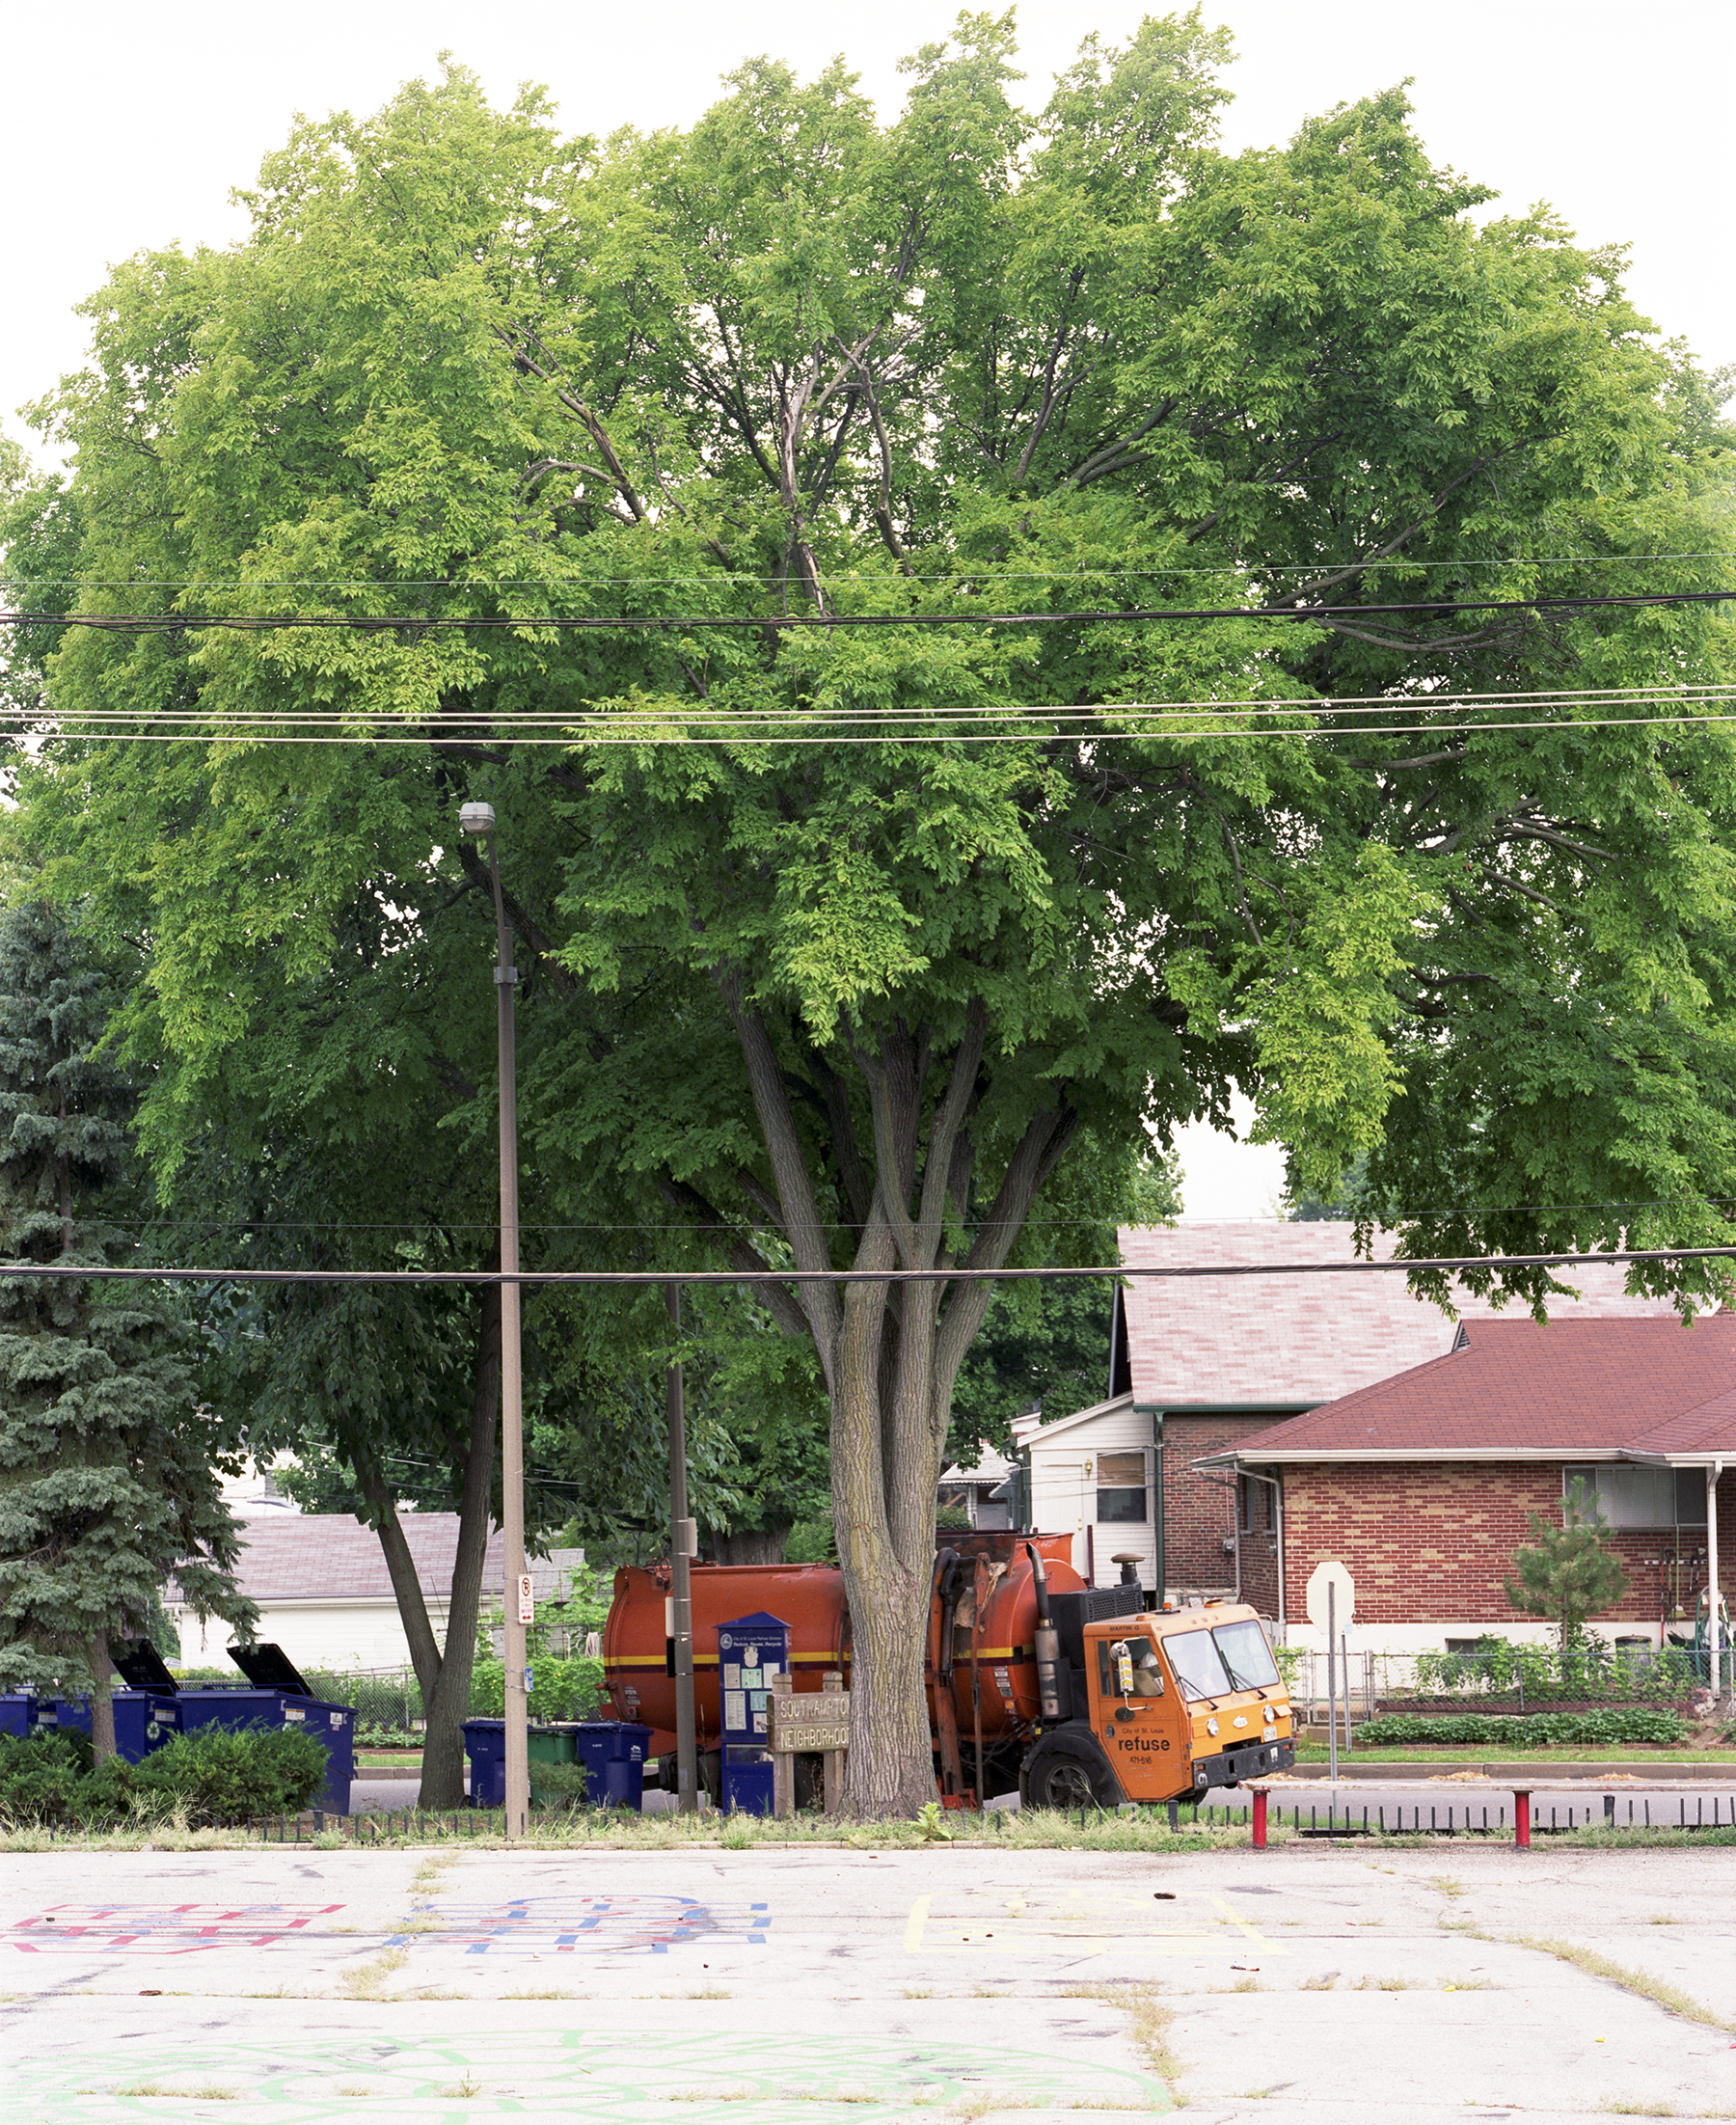 Tree and Trash Truck, 2009